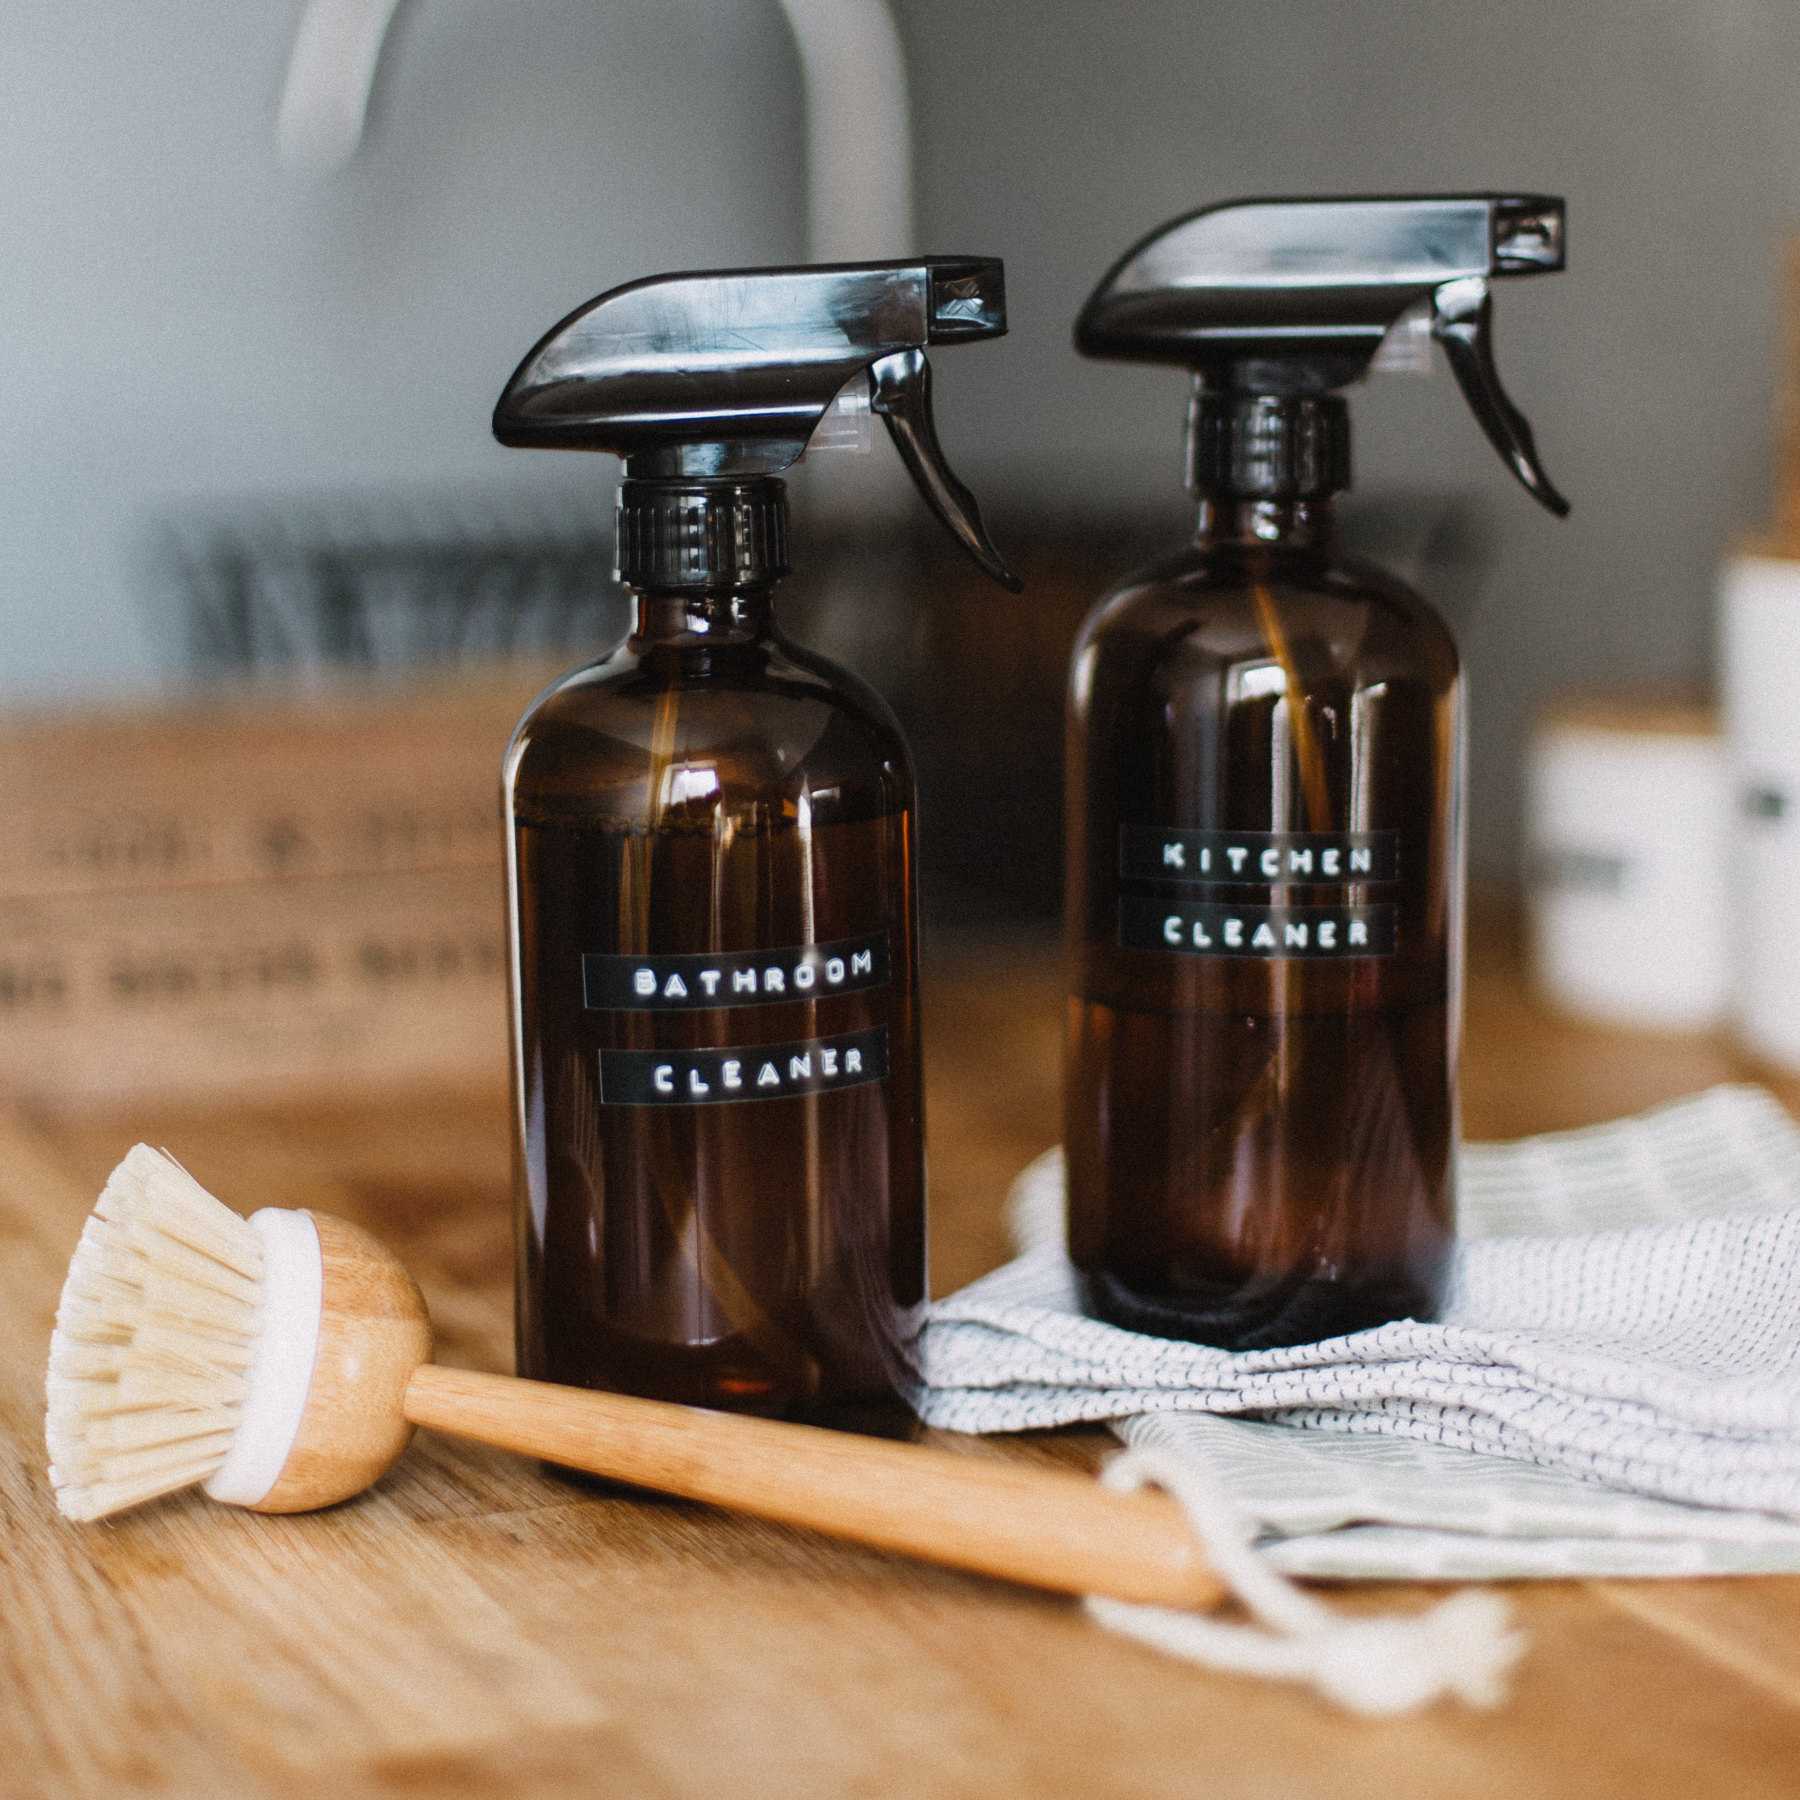 Two plastic amber bottles with black trigger spray caps. One bottle says 'bathroom cleaner' and the other says 'kitchen cleaners